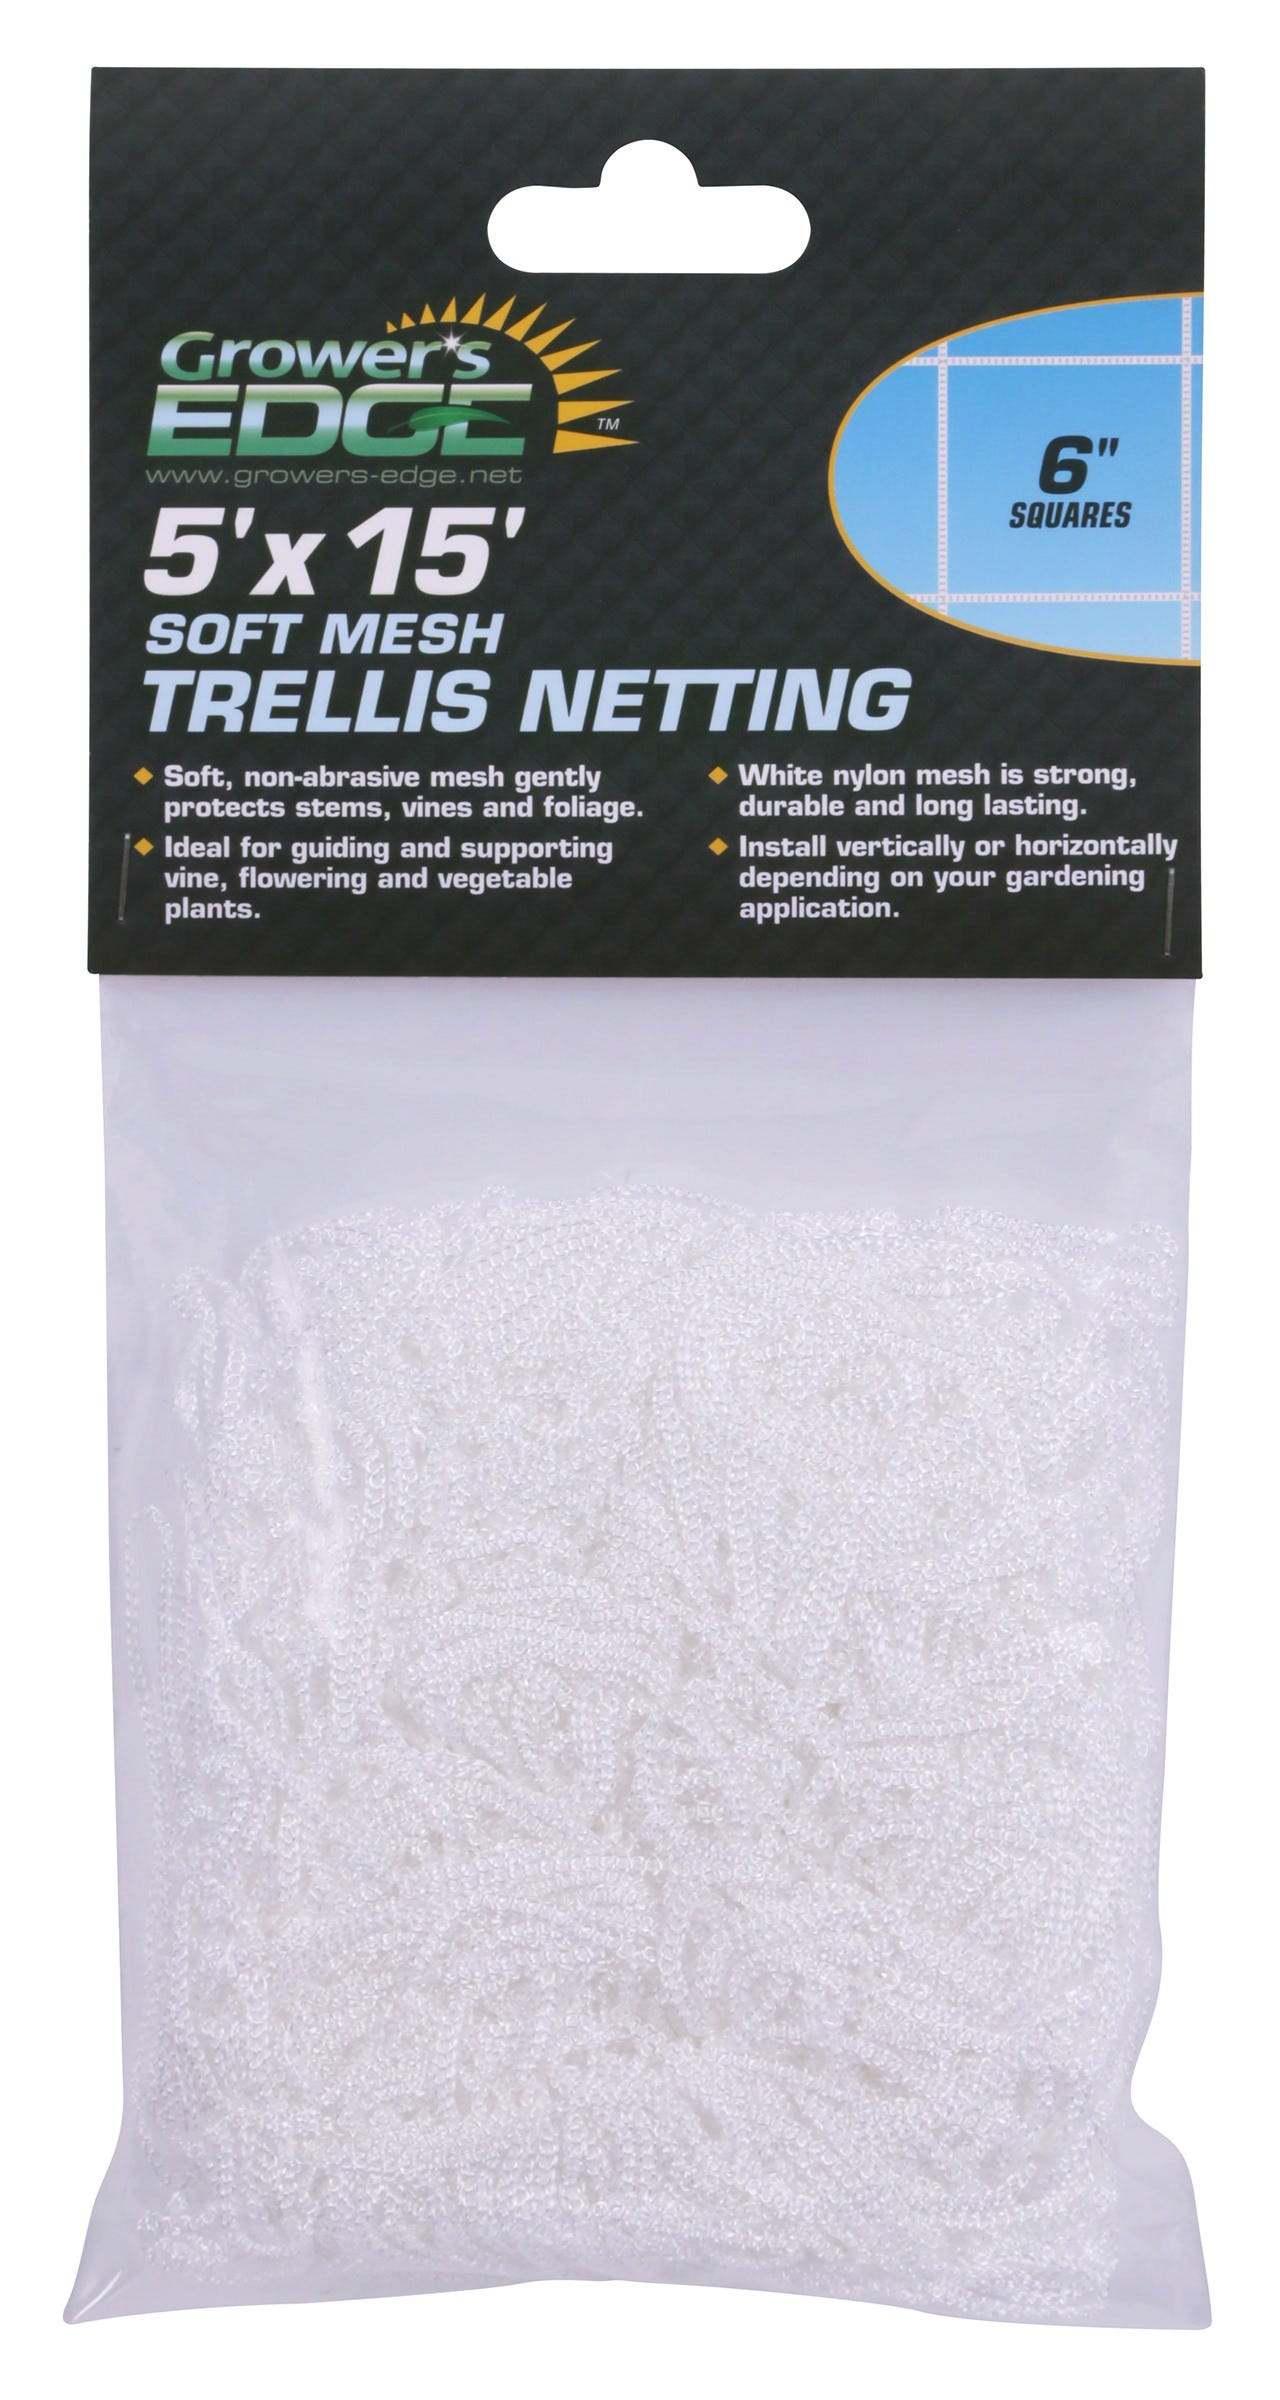 Grower's Edge Soft Mesh Trellis Netting 5 ft x 15 ft w/ 6 in Squares